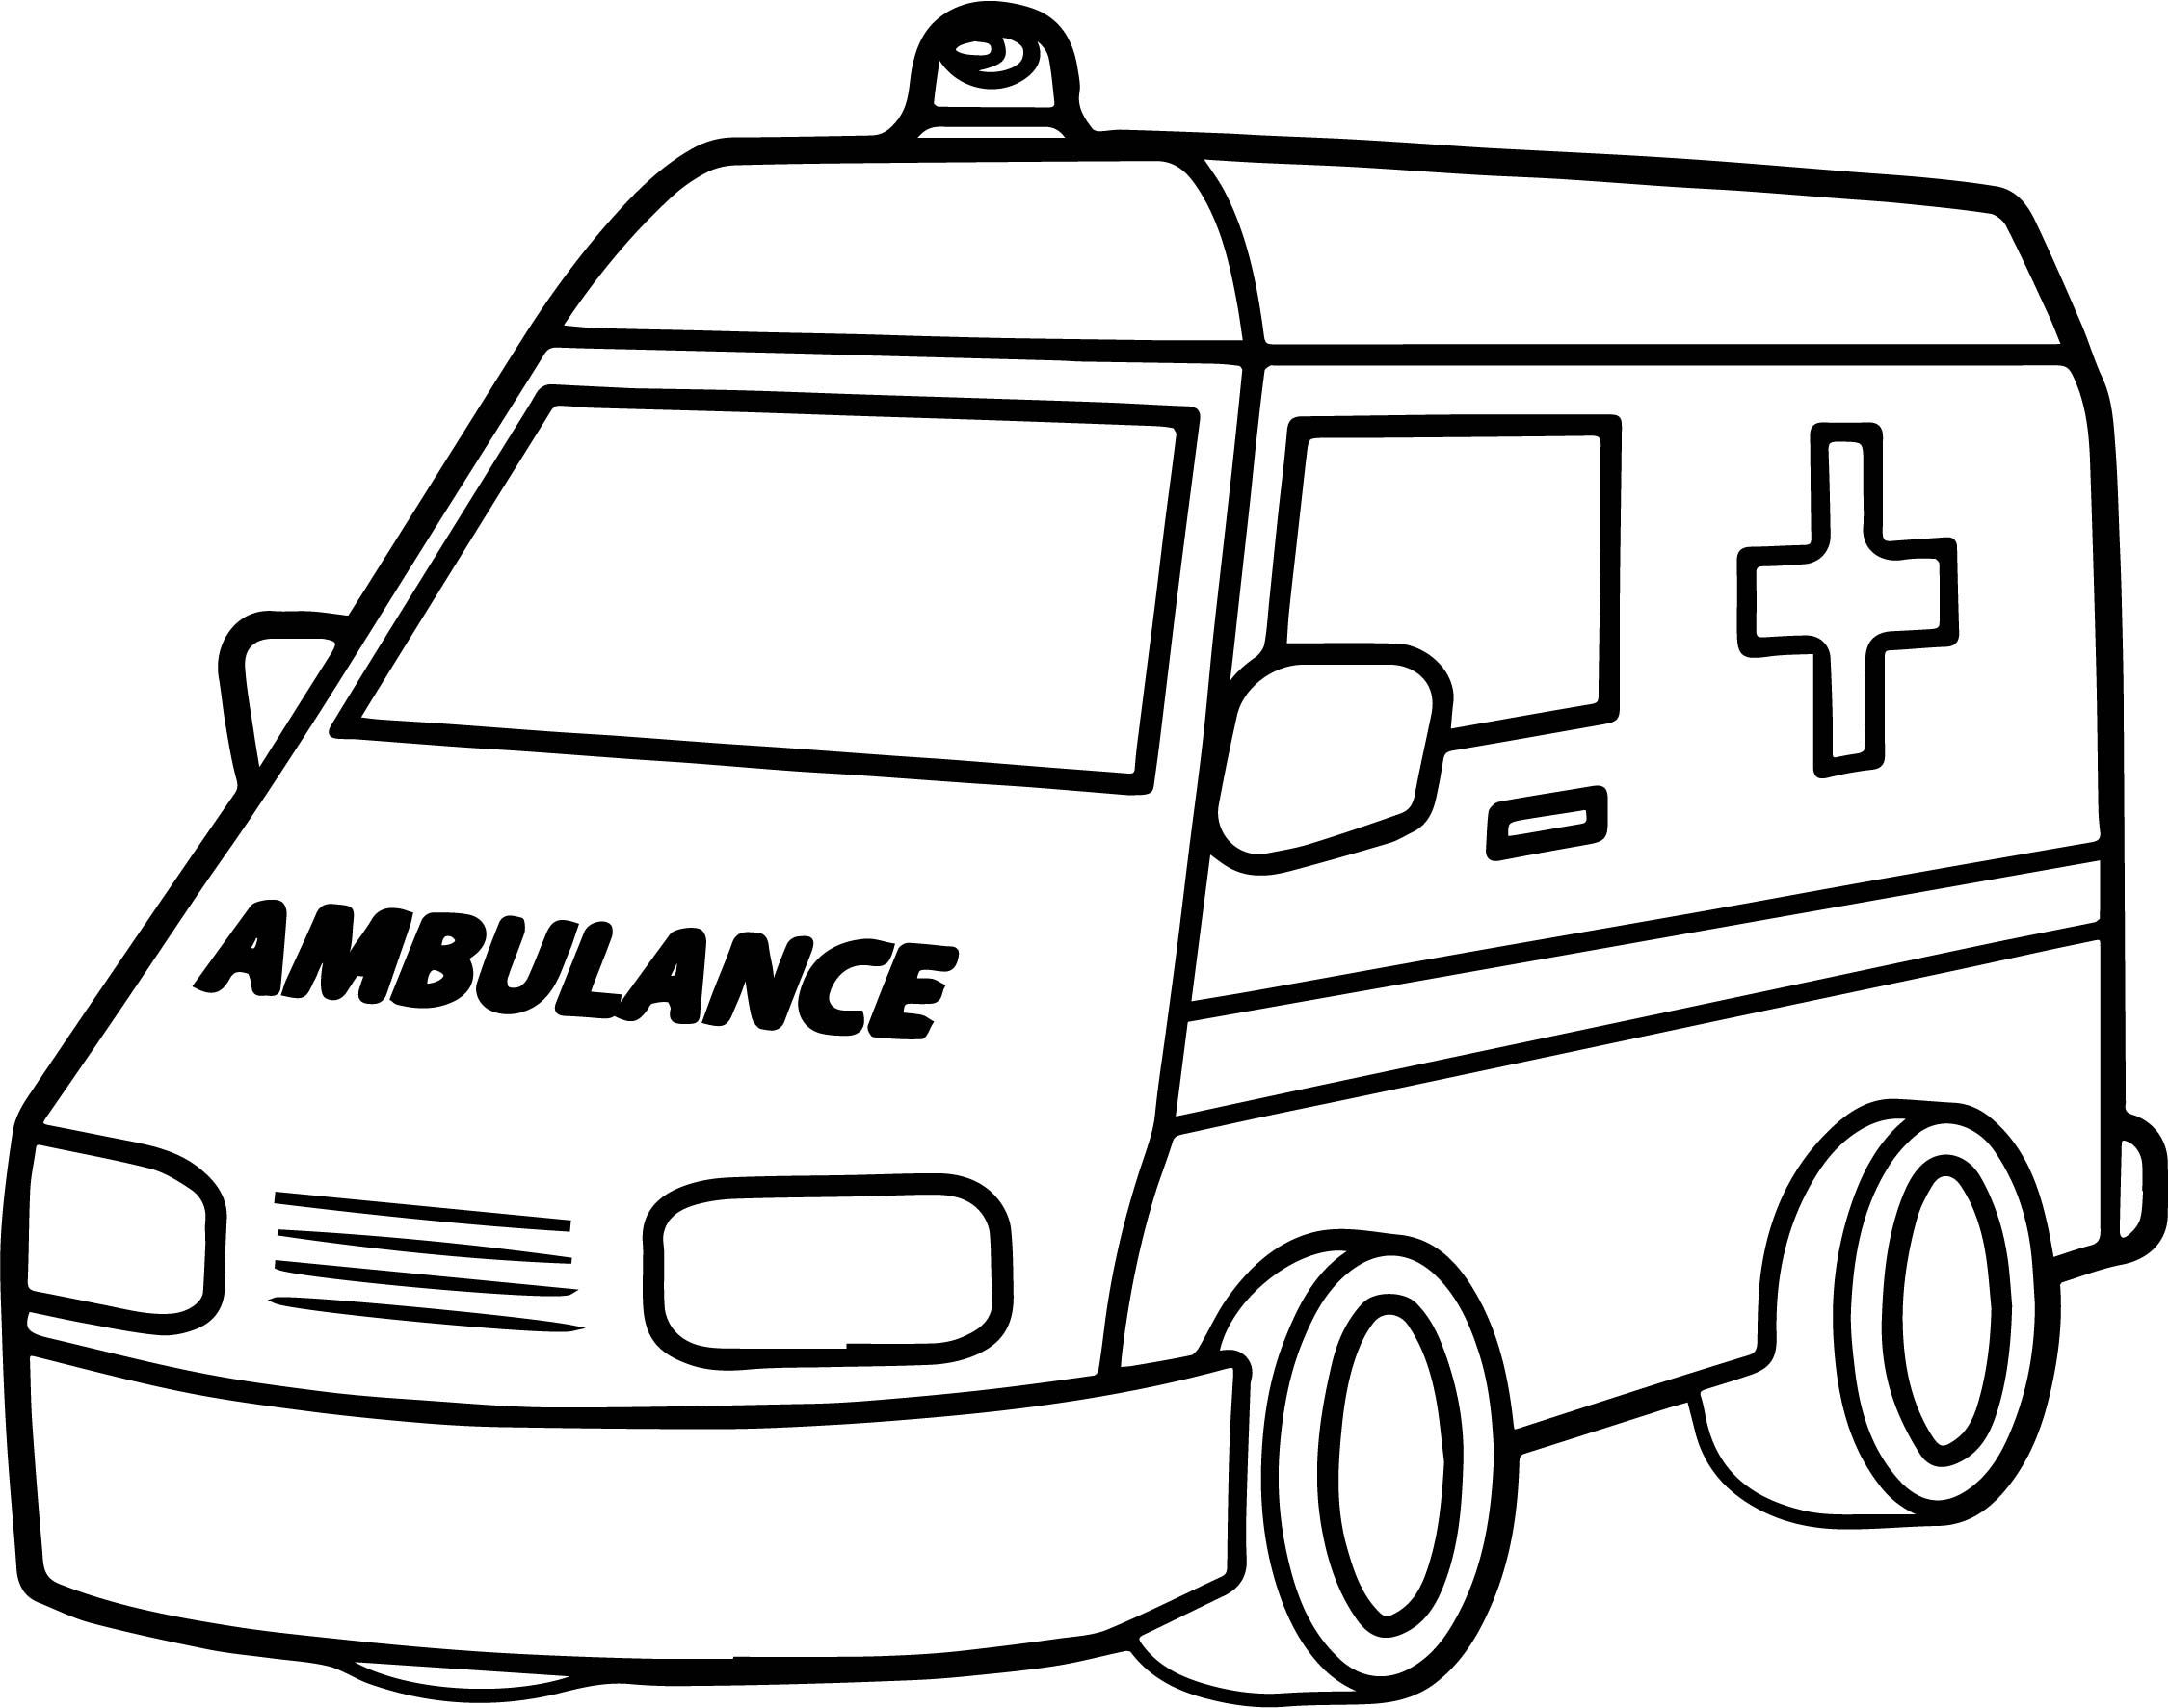 Cool Good Ambulance Coloring Page Truck Coloring Pages Kindergarten Coloring Pages Monster Truck Coloring Pages